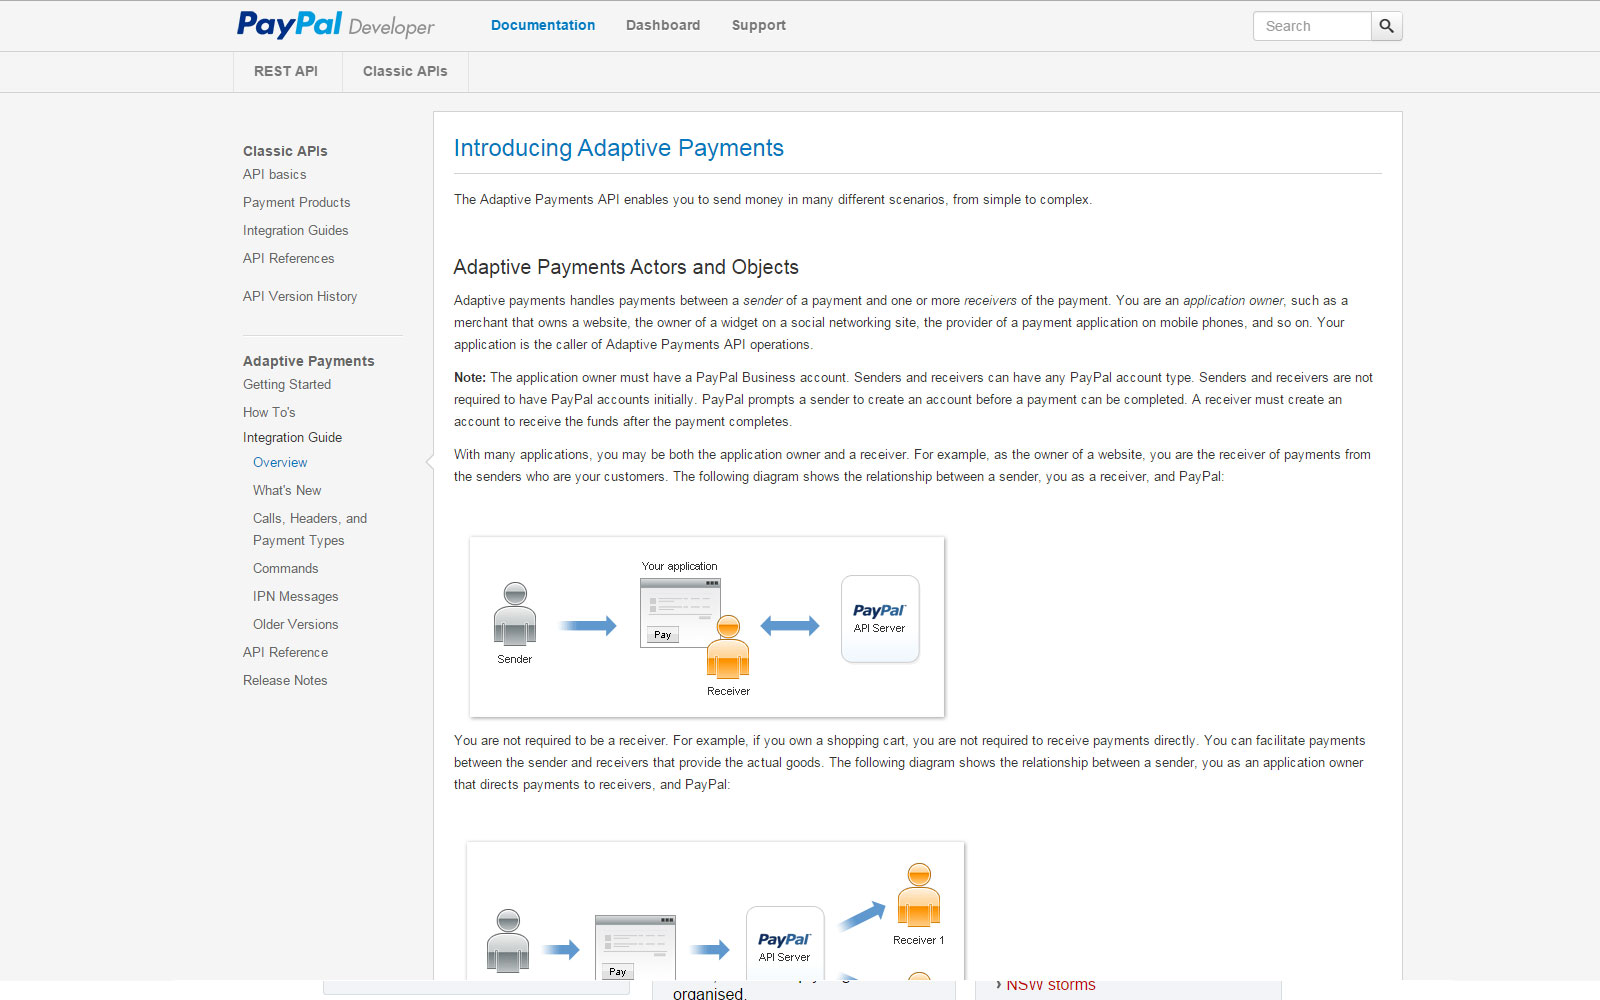 PayPal Adaptive Payments